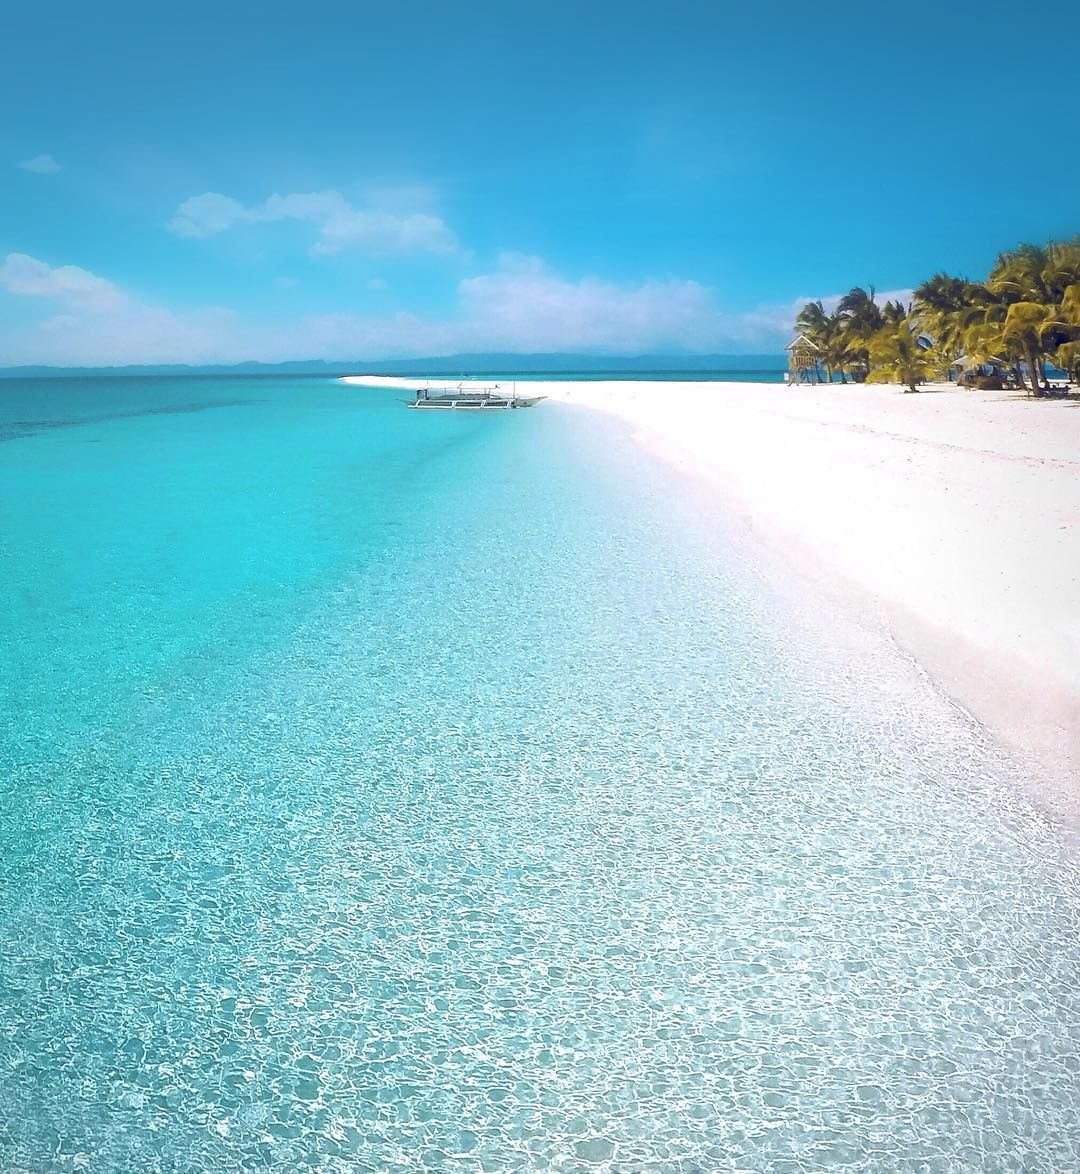 Tropical Island Beaches: Island Vacation Beach Holiday Clear Blue Water White Sand